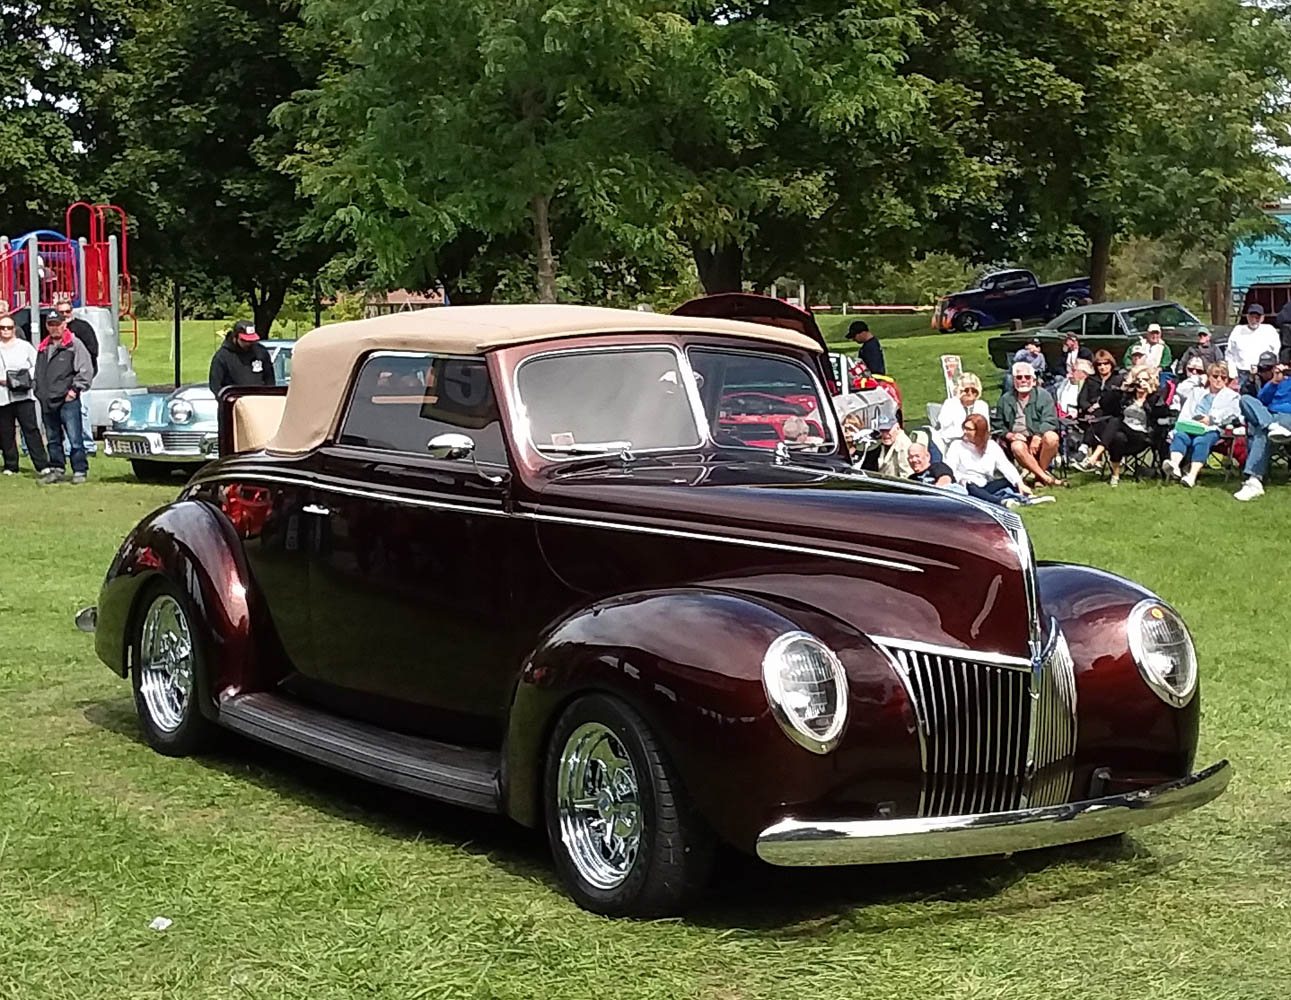 Top 25- 1939 Ford Convertible, Gary Marsh 1